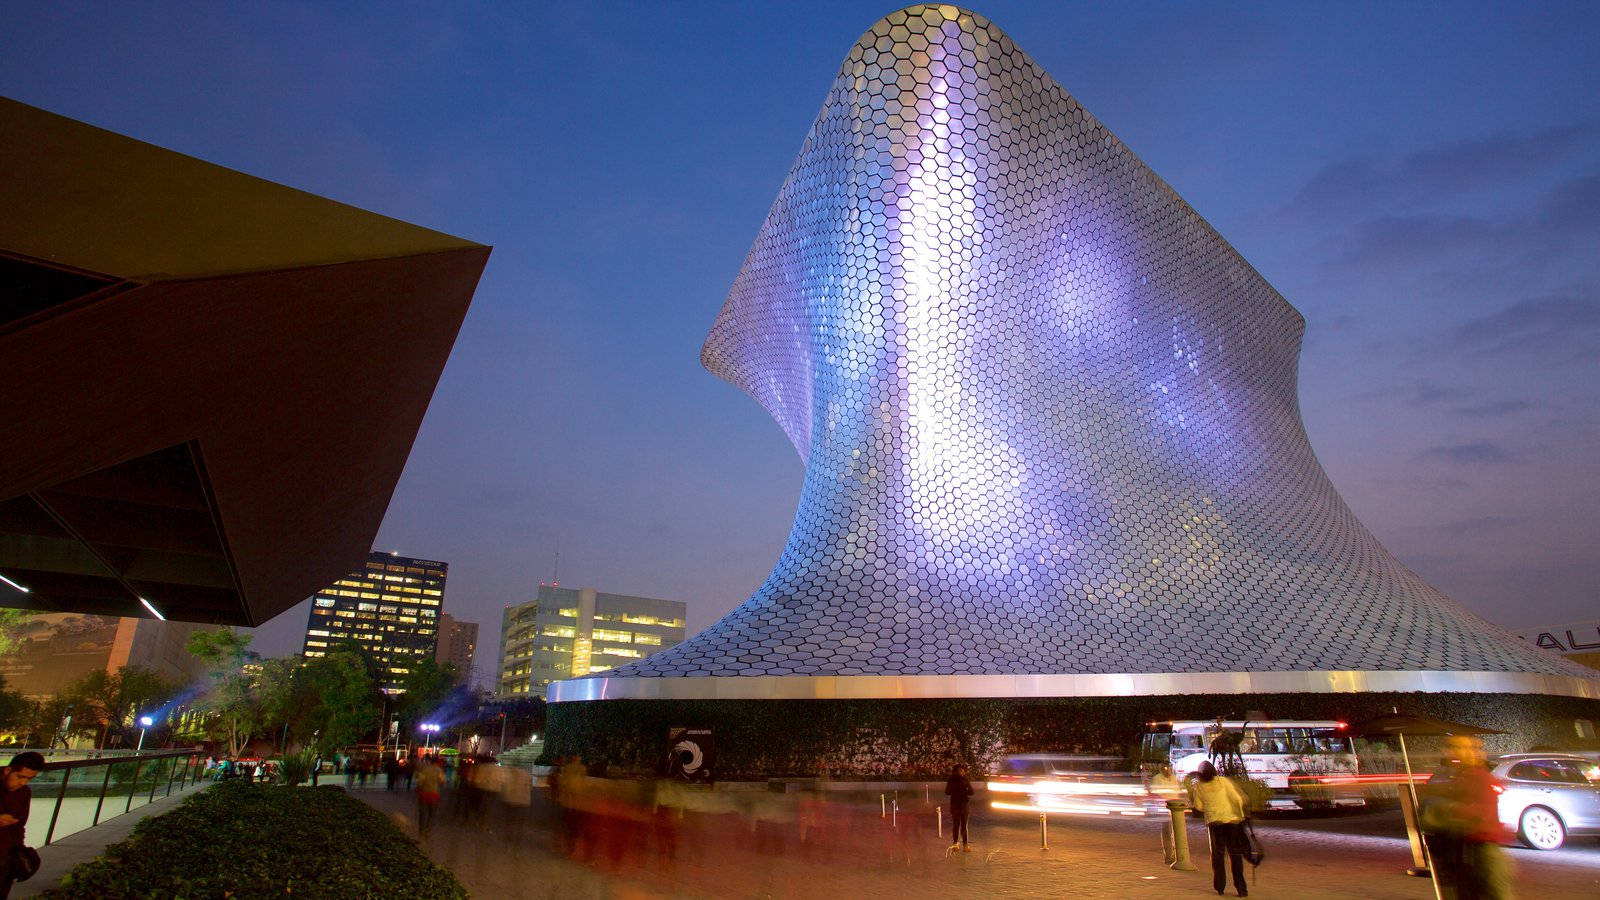 Museo Soumaya which includes modern architecture, night scenes and a square or plaza